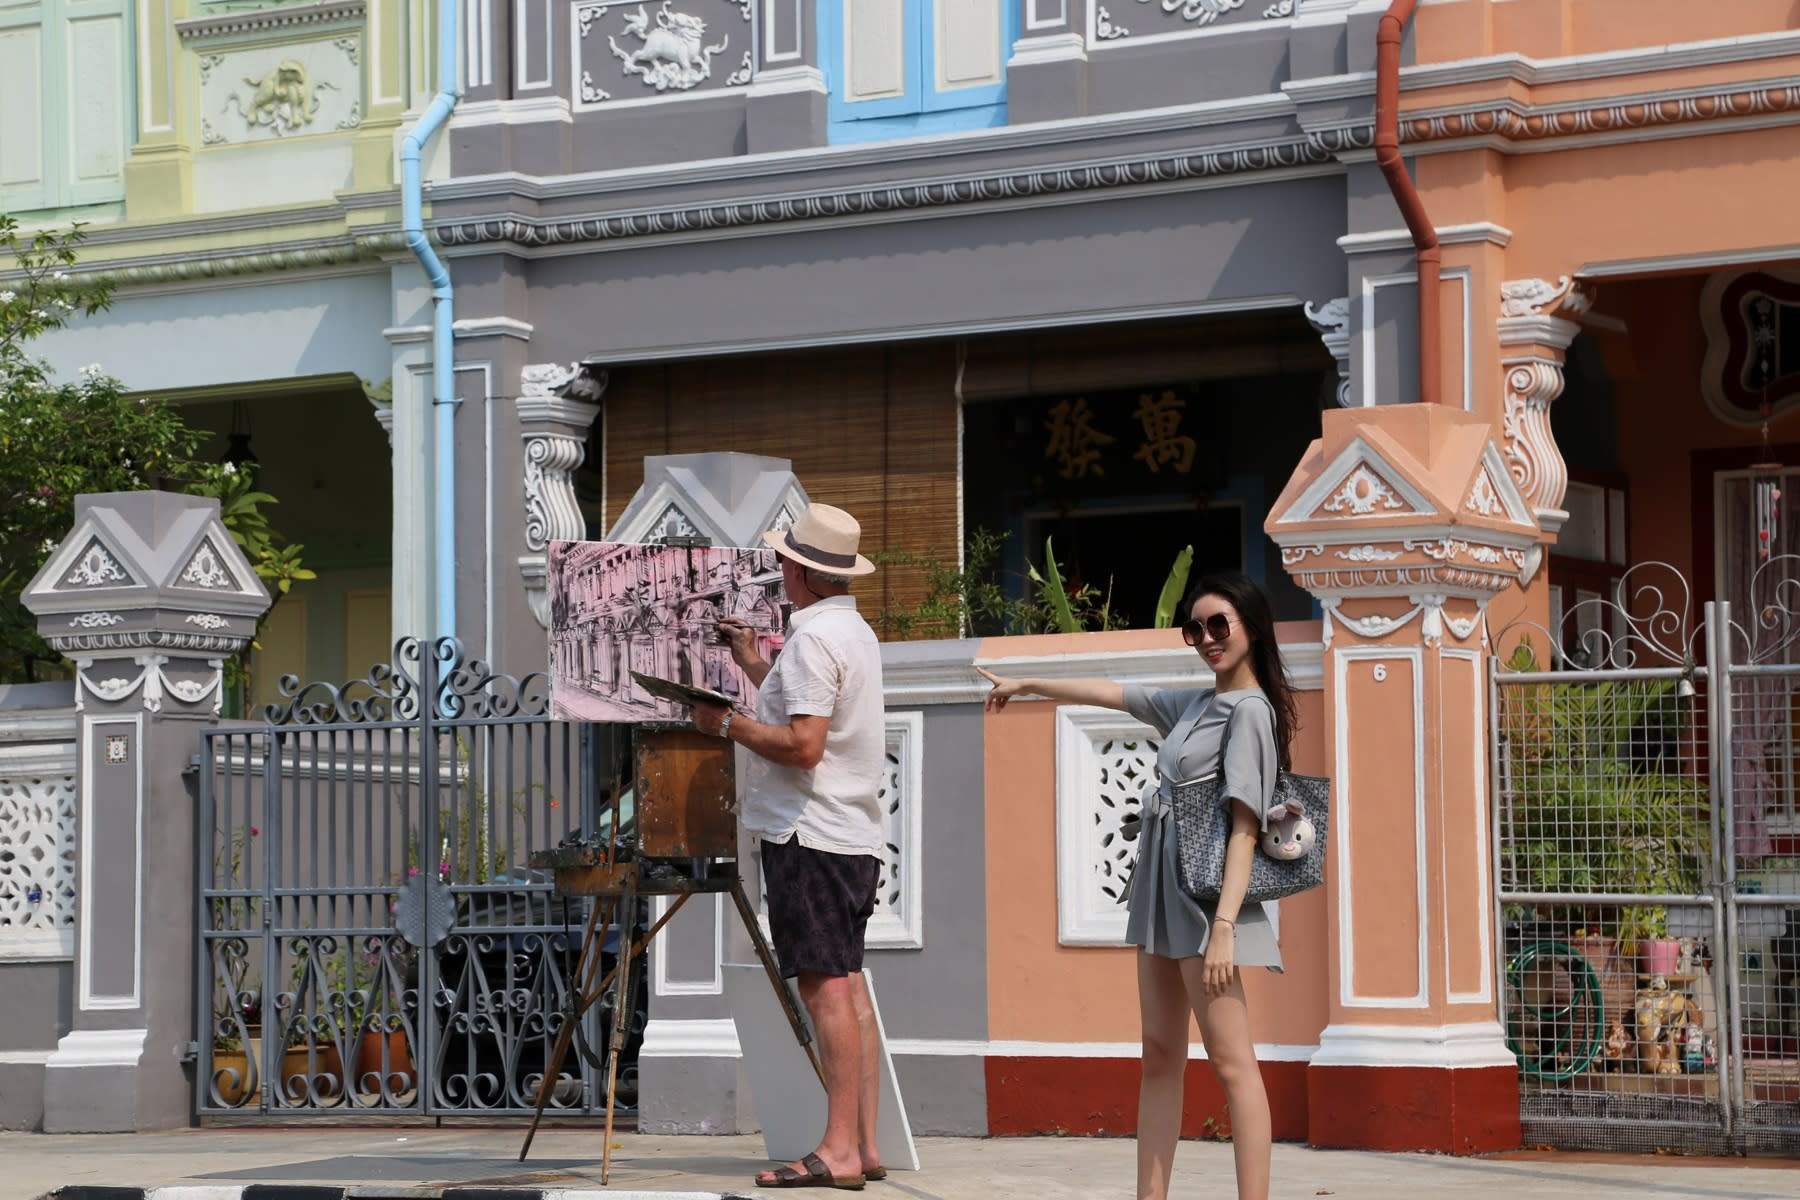 22 SEPTEMBER 2019 KOON SENG ROAD, SINGAPORE Colourful Peranakan Shophouses photo: Agata Byrne